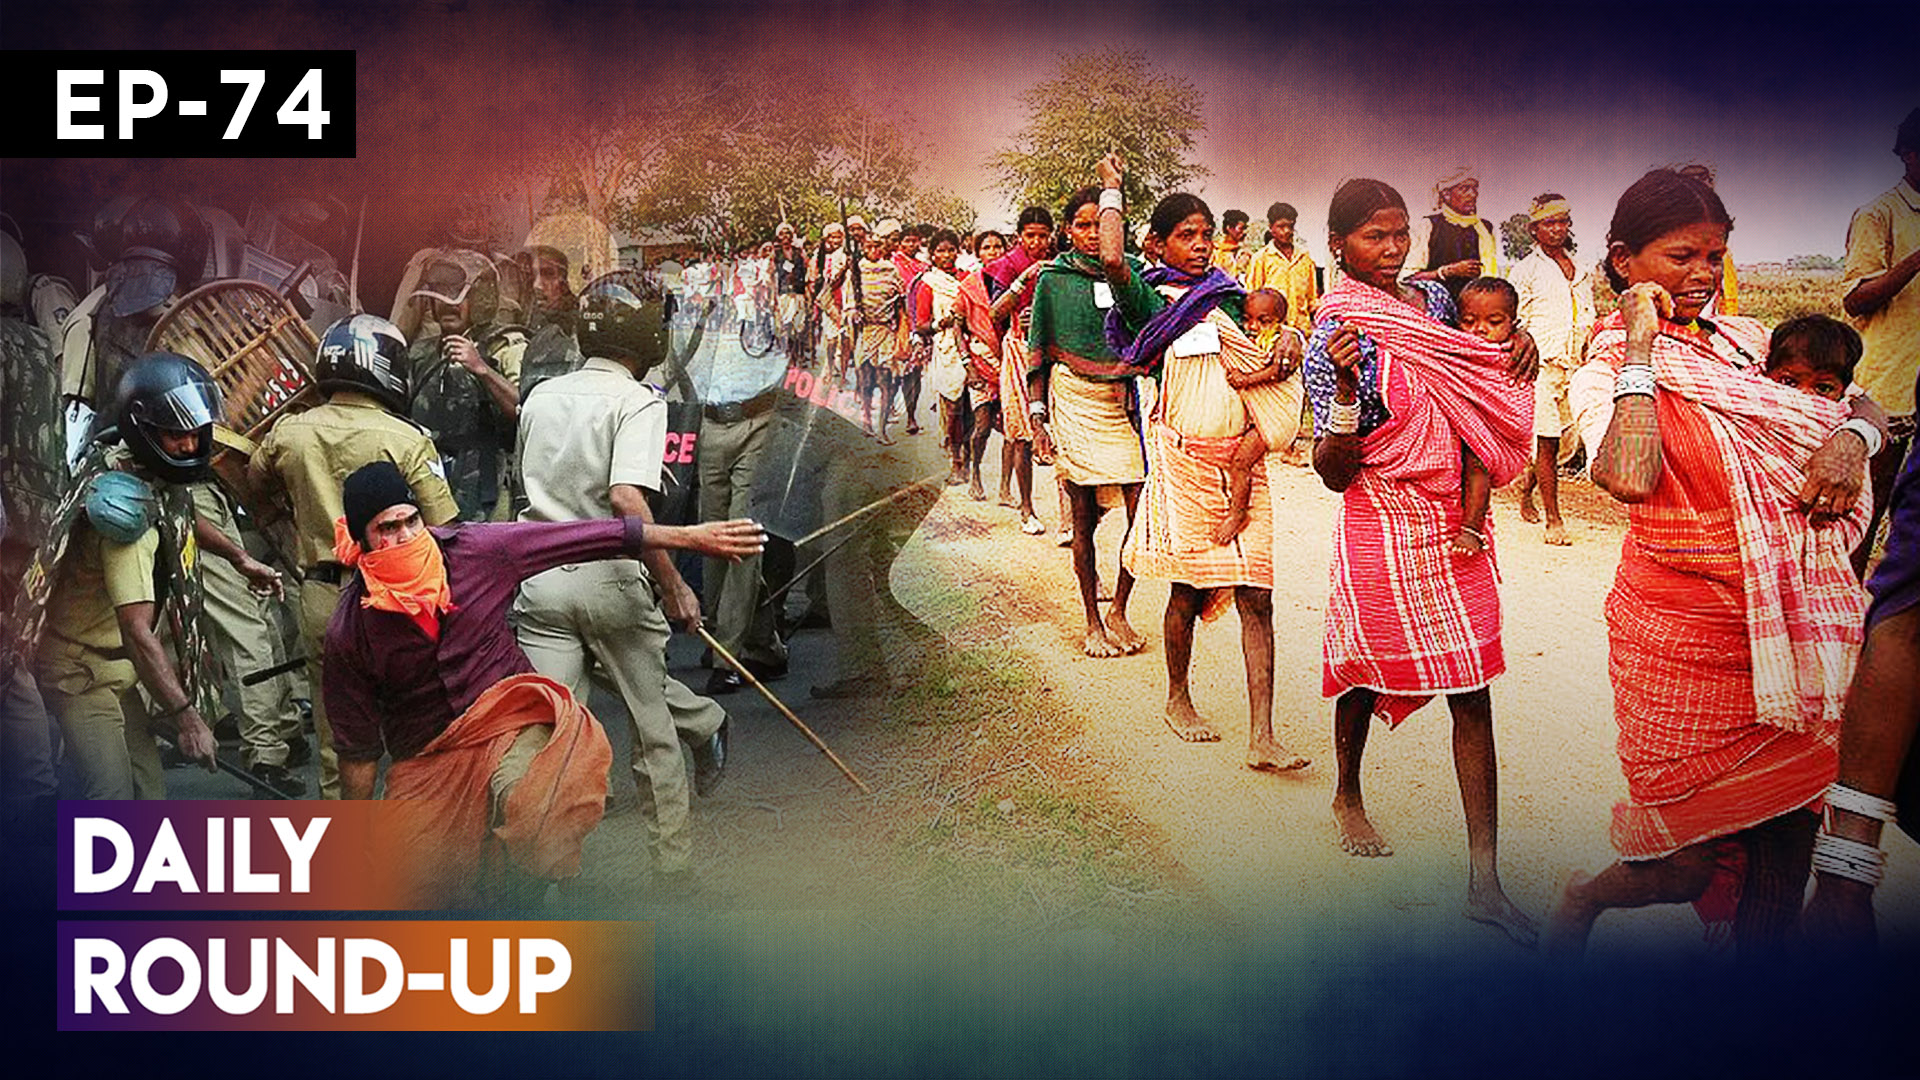 Daily Round-up Ep 74: 6,000 Adivasi Workers on indefinite protest in MP and more